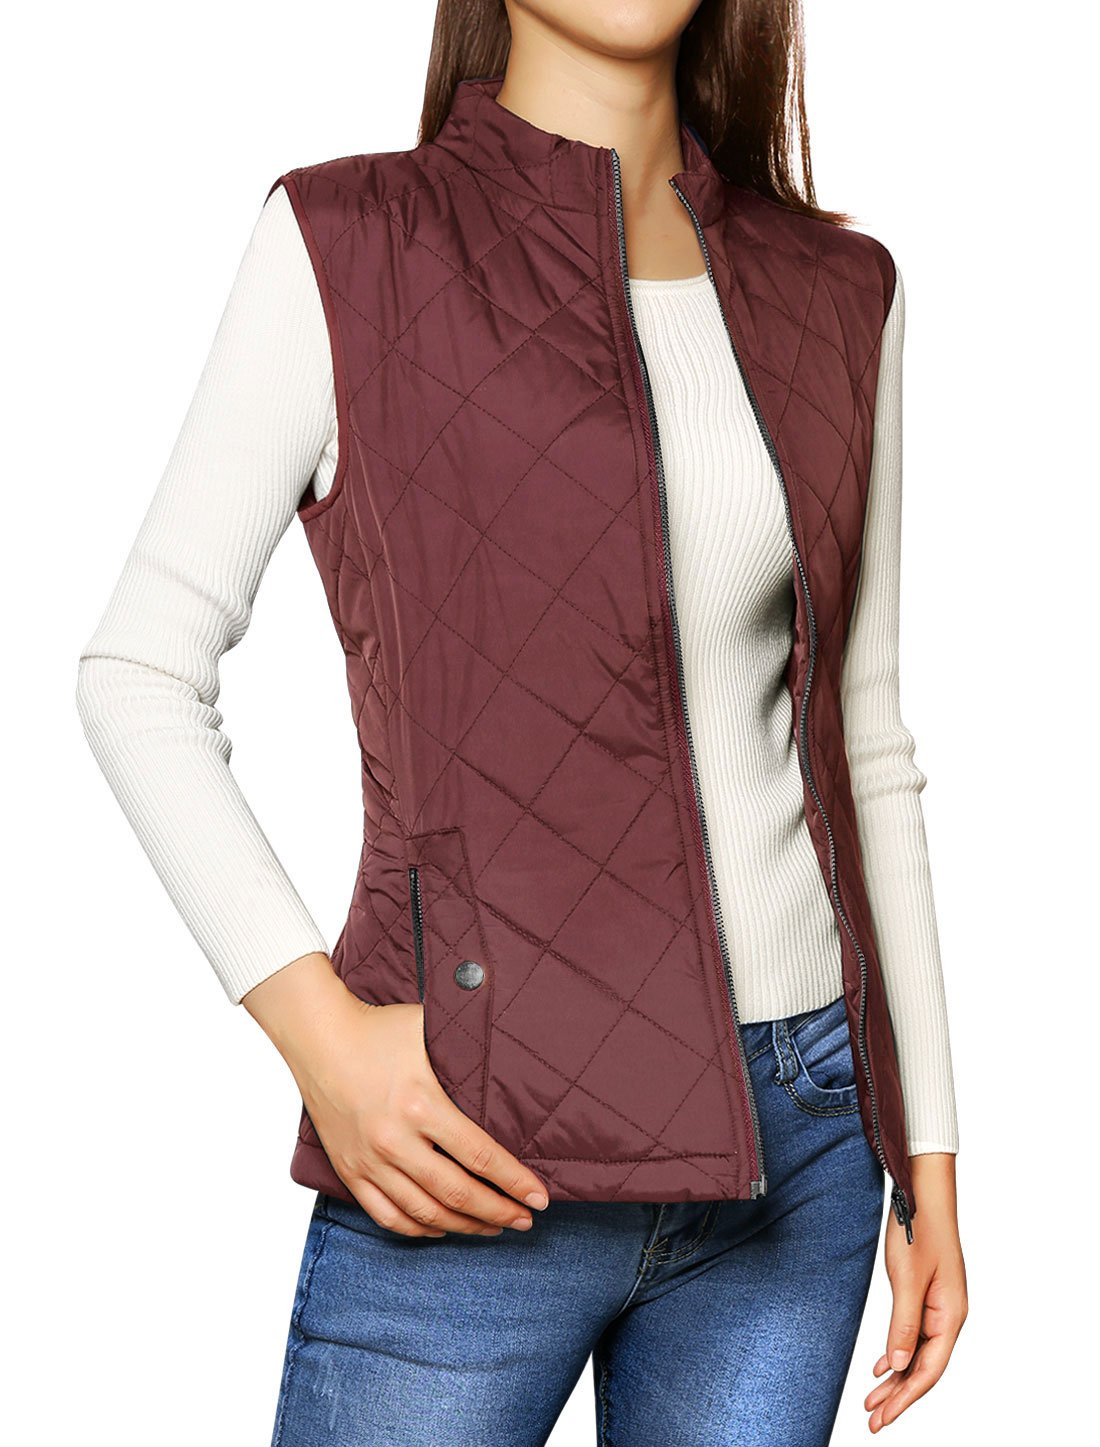 Allegra K Women's Stand Collar Lightweight Gilet Quilted Zip Vest s18040800it0212